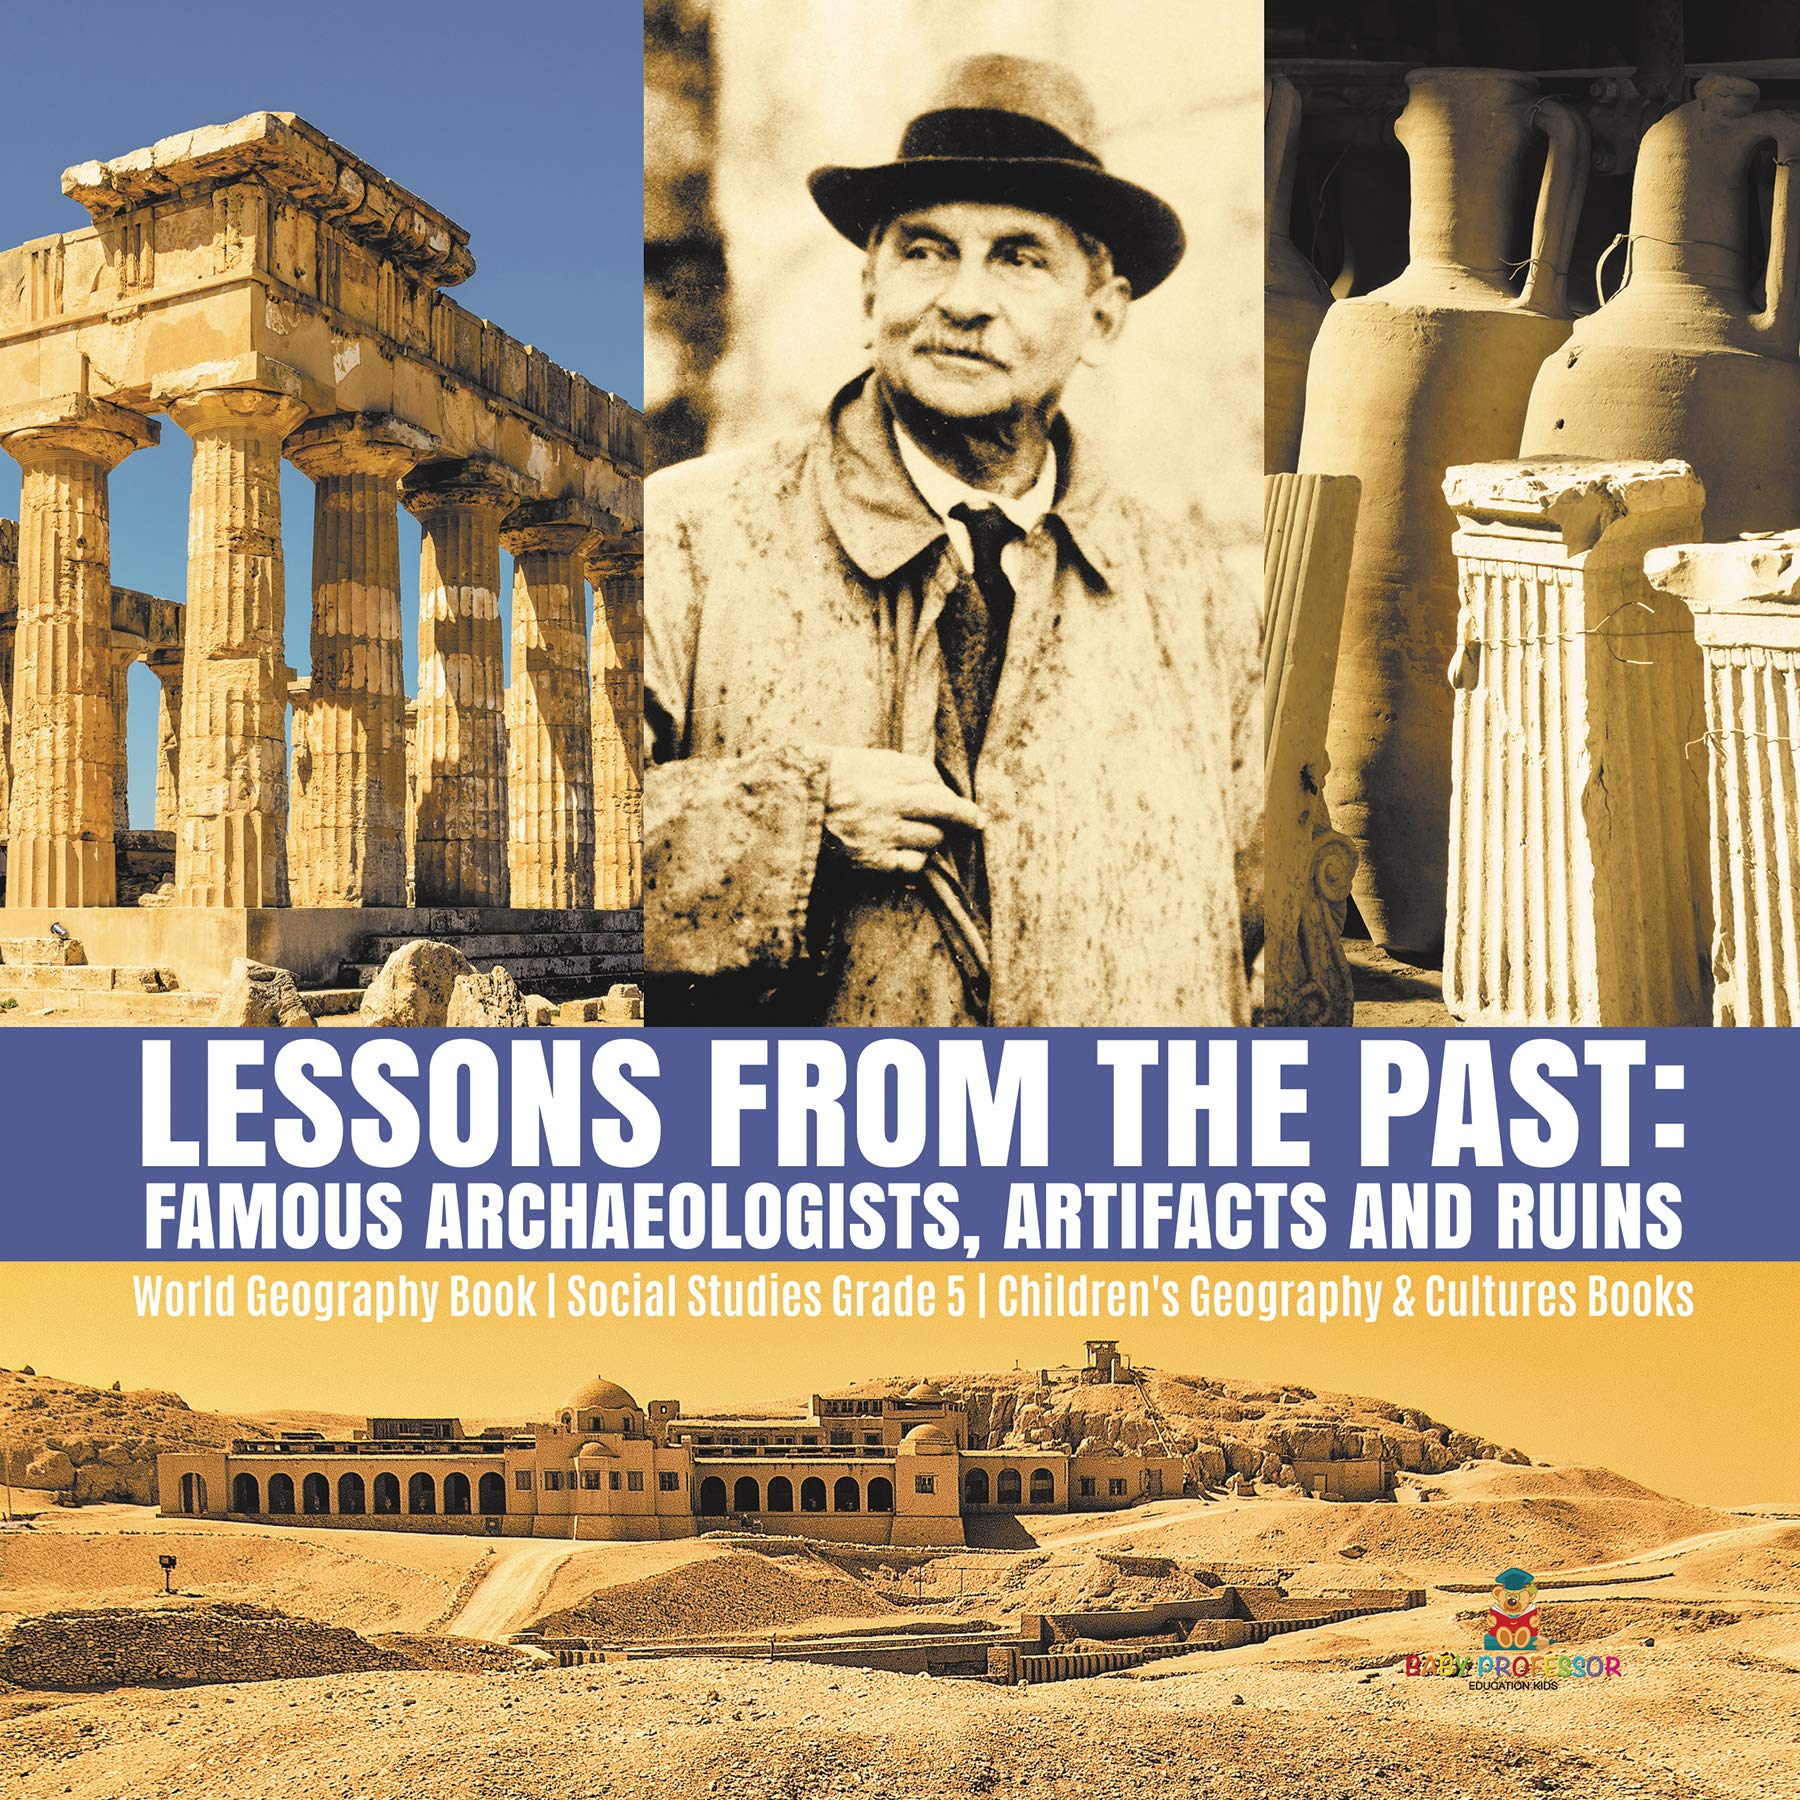 Lessons from the Past : Famous Archaeologists, Artifacts and Ruins | World Geography Book | Social Studies Grade 5 | Children's Geography & Cultures Books